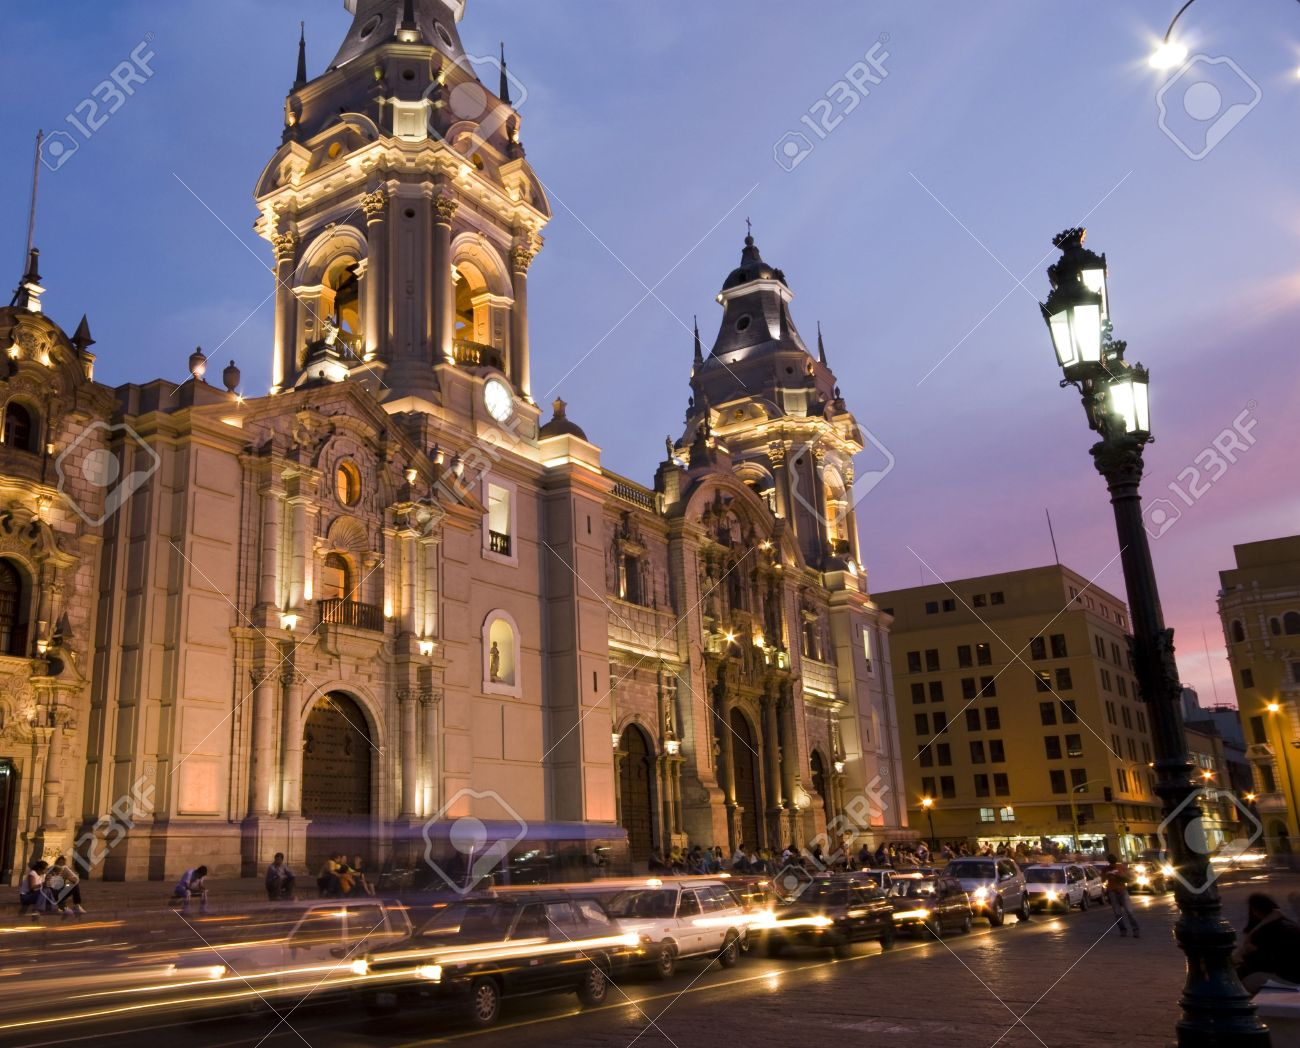 catedral at night on plaza de armas also known as plaza mayor lima peru Stock Photo - 3242689